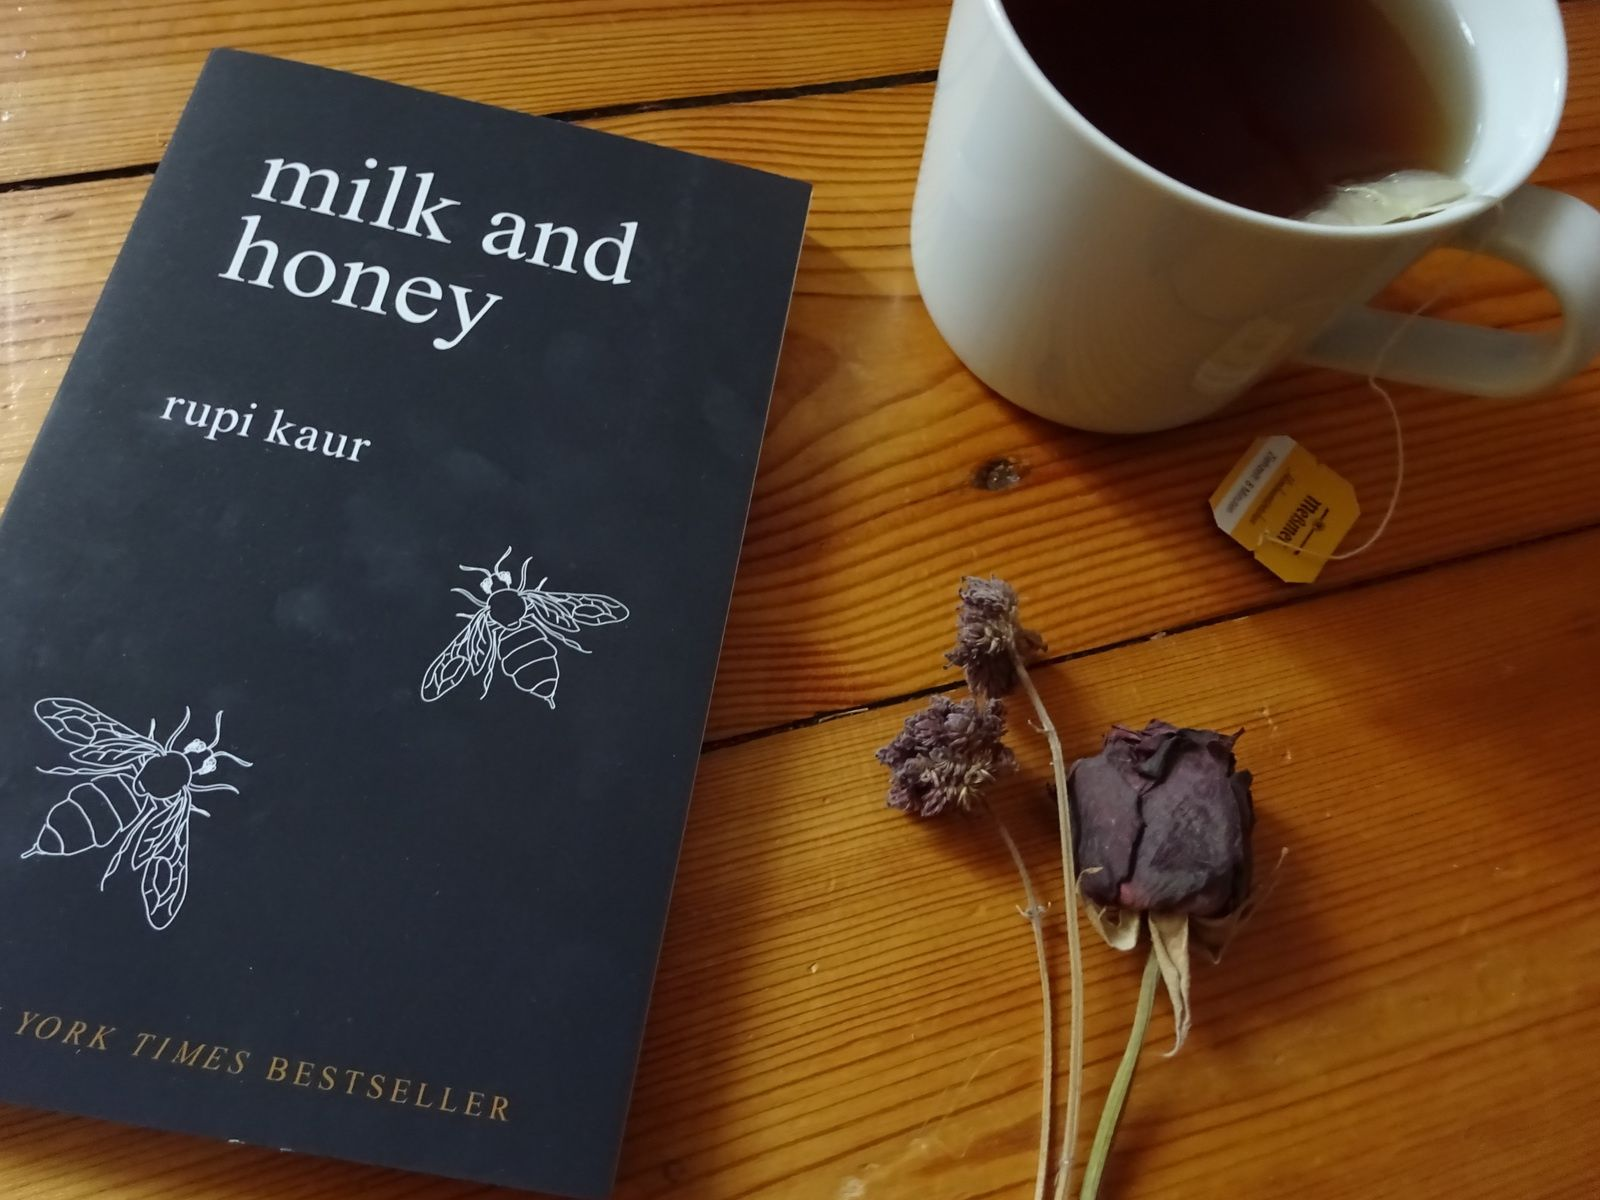 Buchbewertung: 'milk and honey'